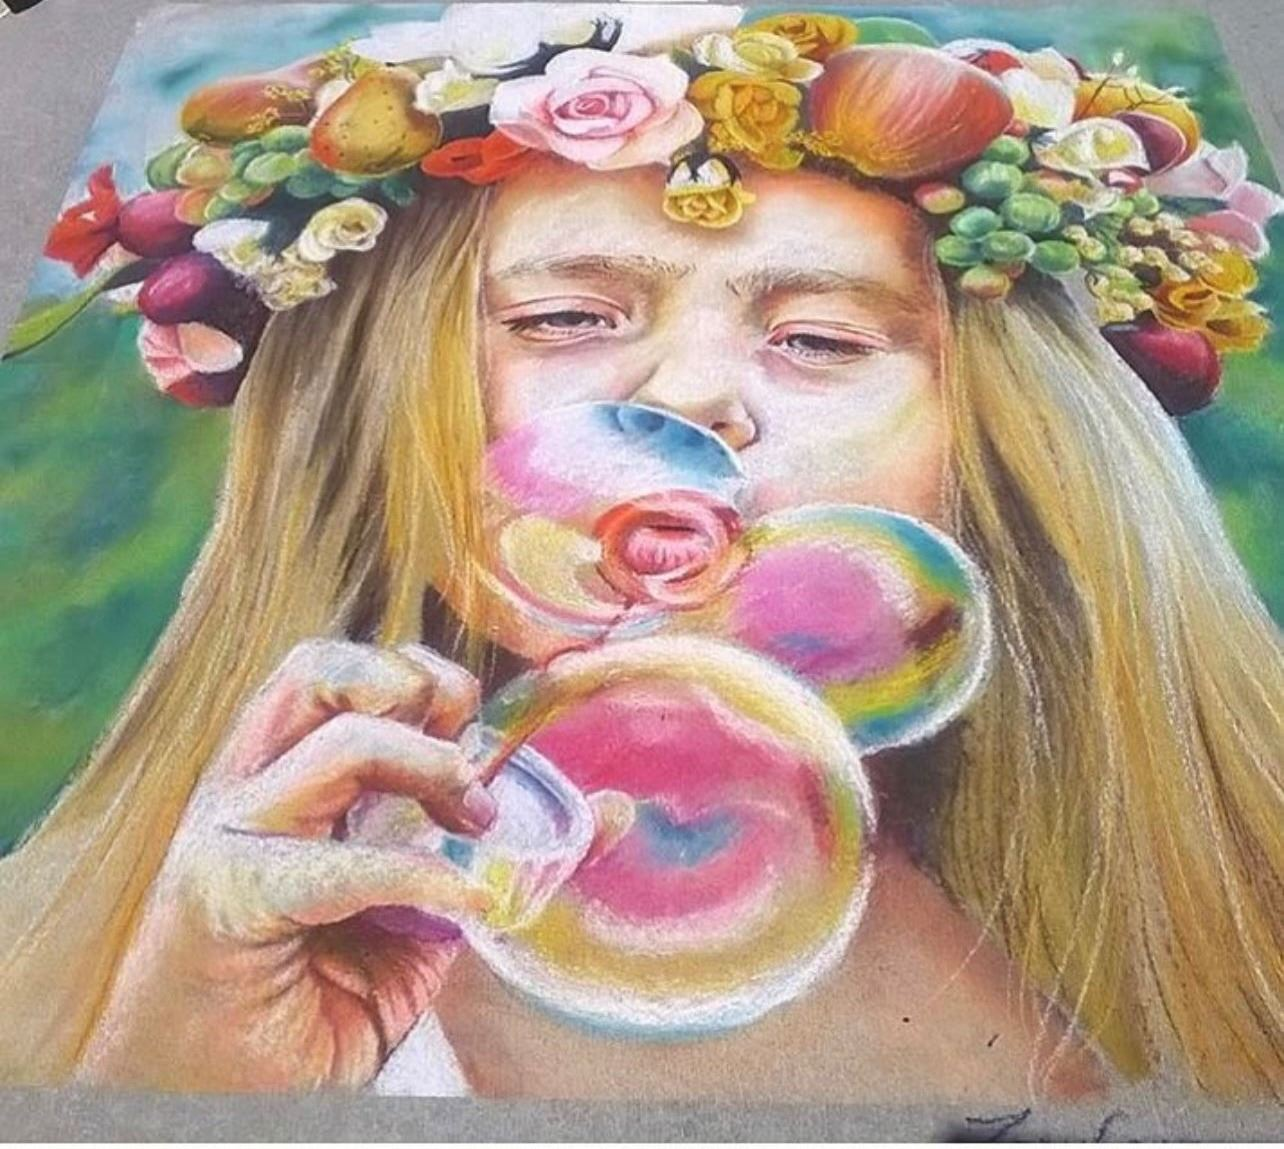 Chalk Art of Girl Blowing Bubble